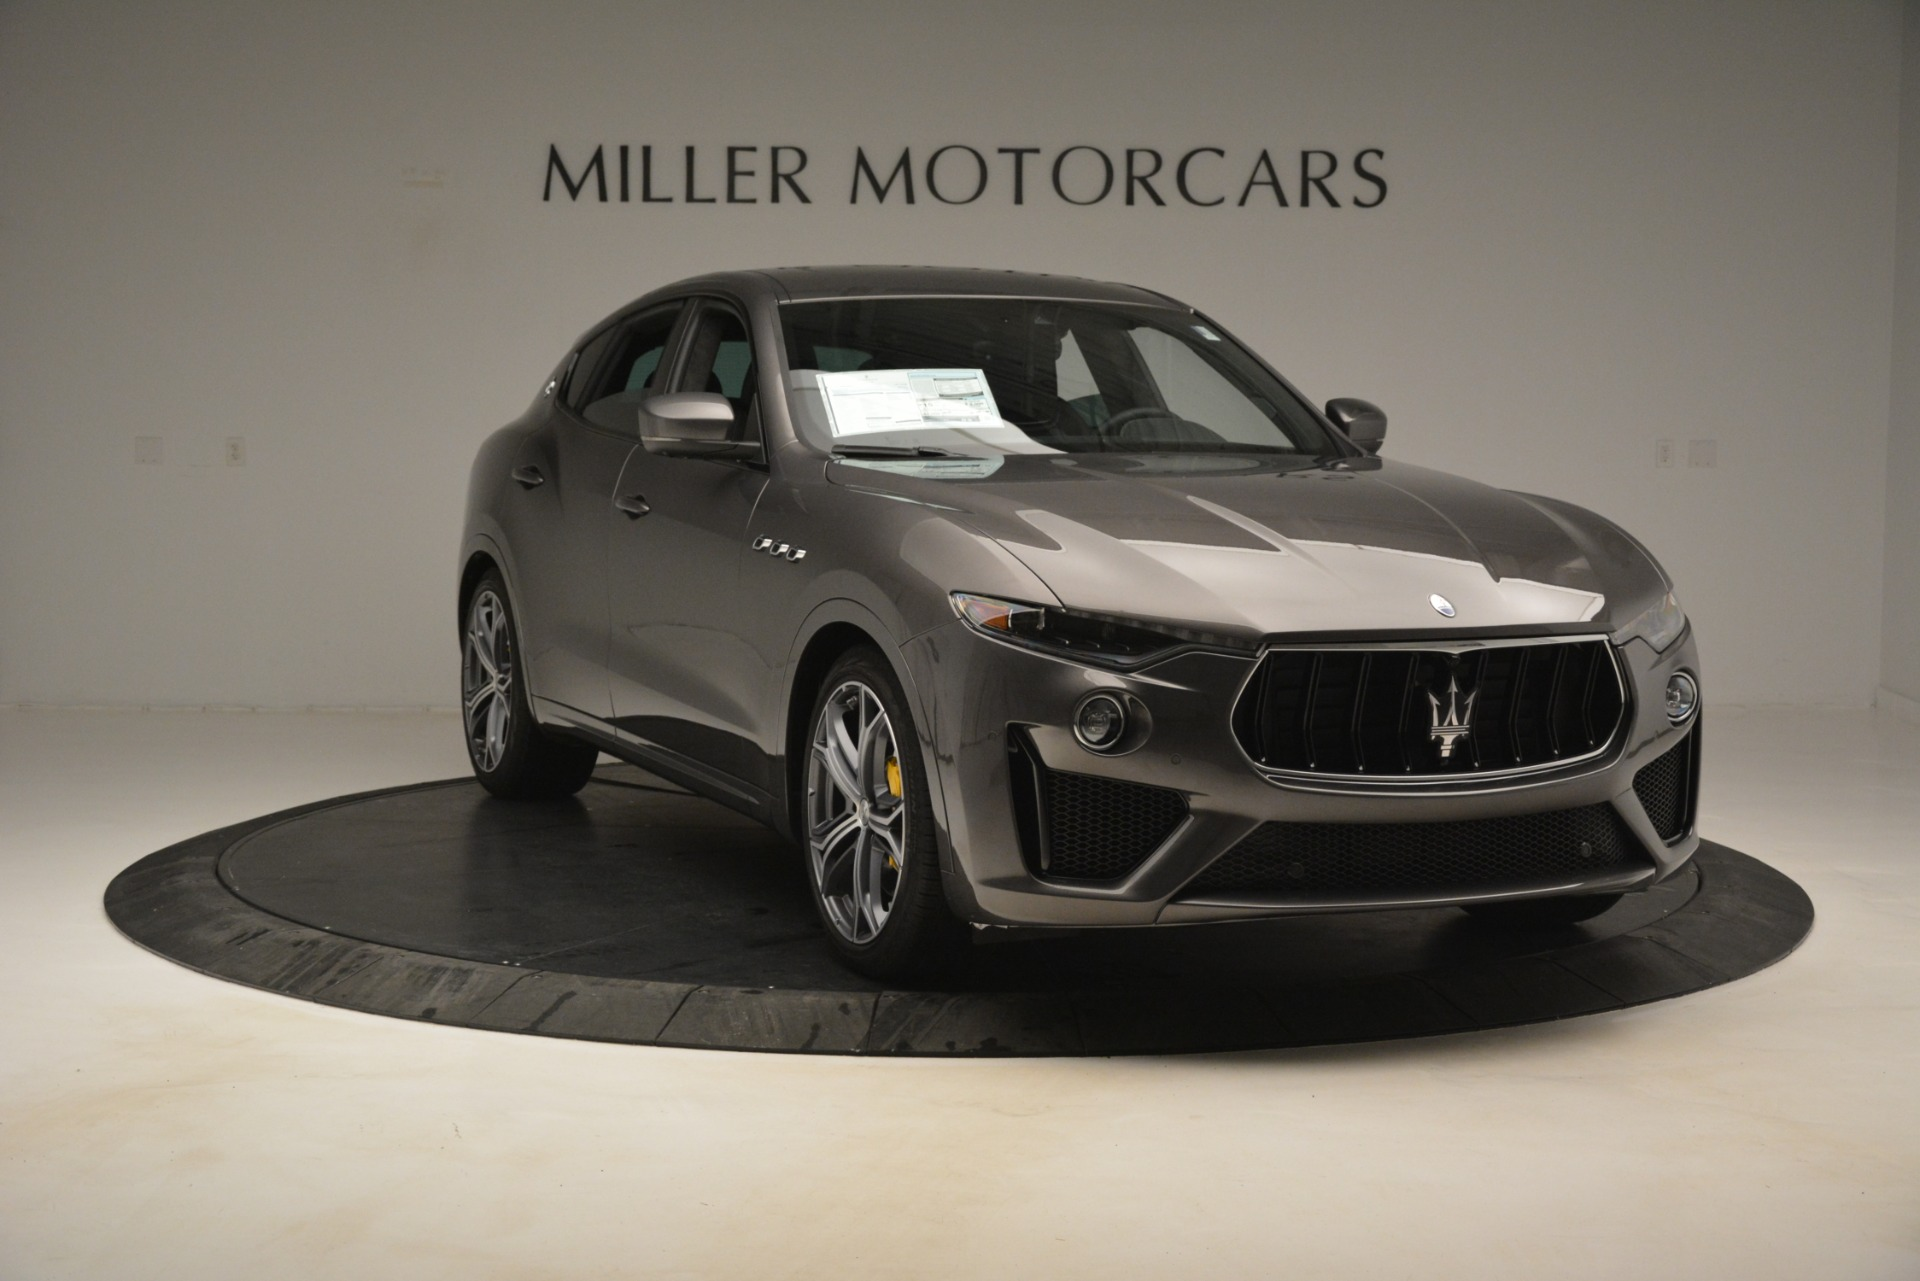 New 2019 Maserati Levante GTS For Sale In Westport, CT 3015_p11